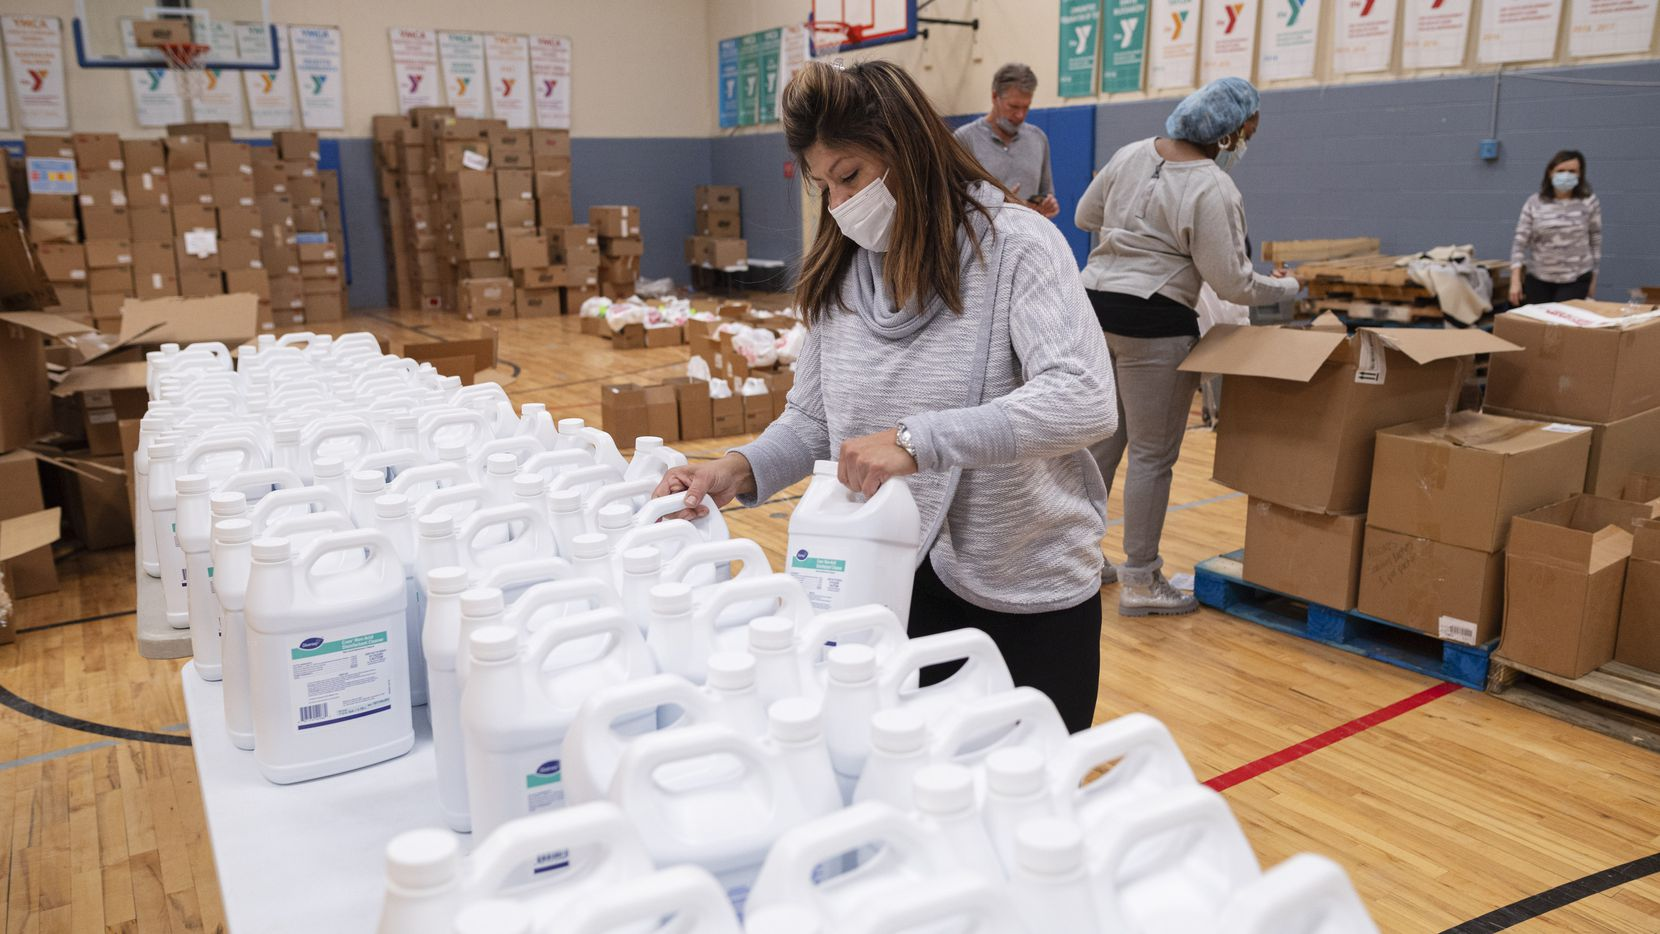 Irene Johnson, district executive director for Frisco Family YMCA and Plano Family YMCA, organizes gallons of disinfectant cleaner as workers packed essentials goods for families in need at the Moorland Family YMCA in Dallas. MacKenzie Scott, author and philanthropist, donated $10 million to the YMCA of Metropolitan Dallas.